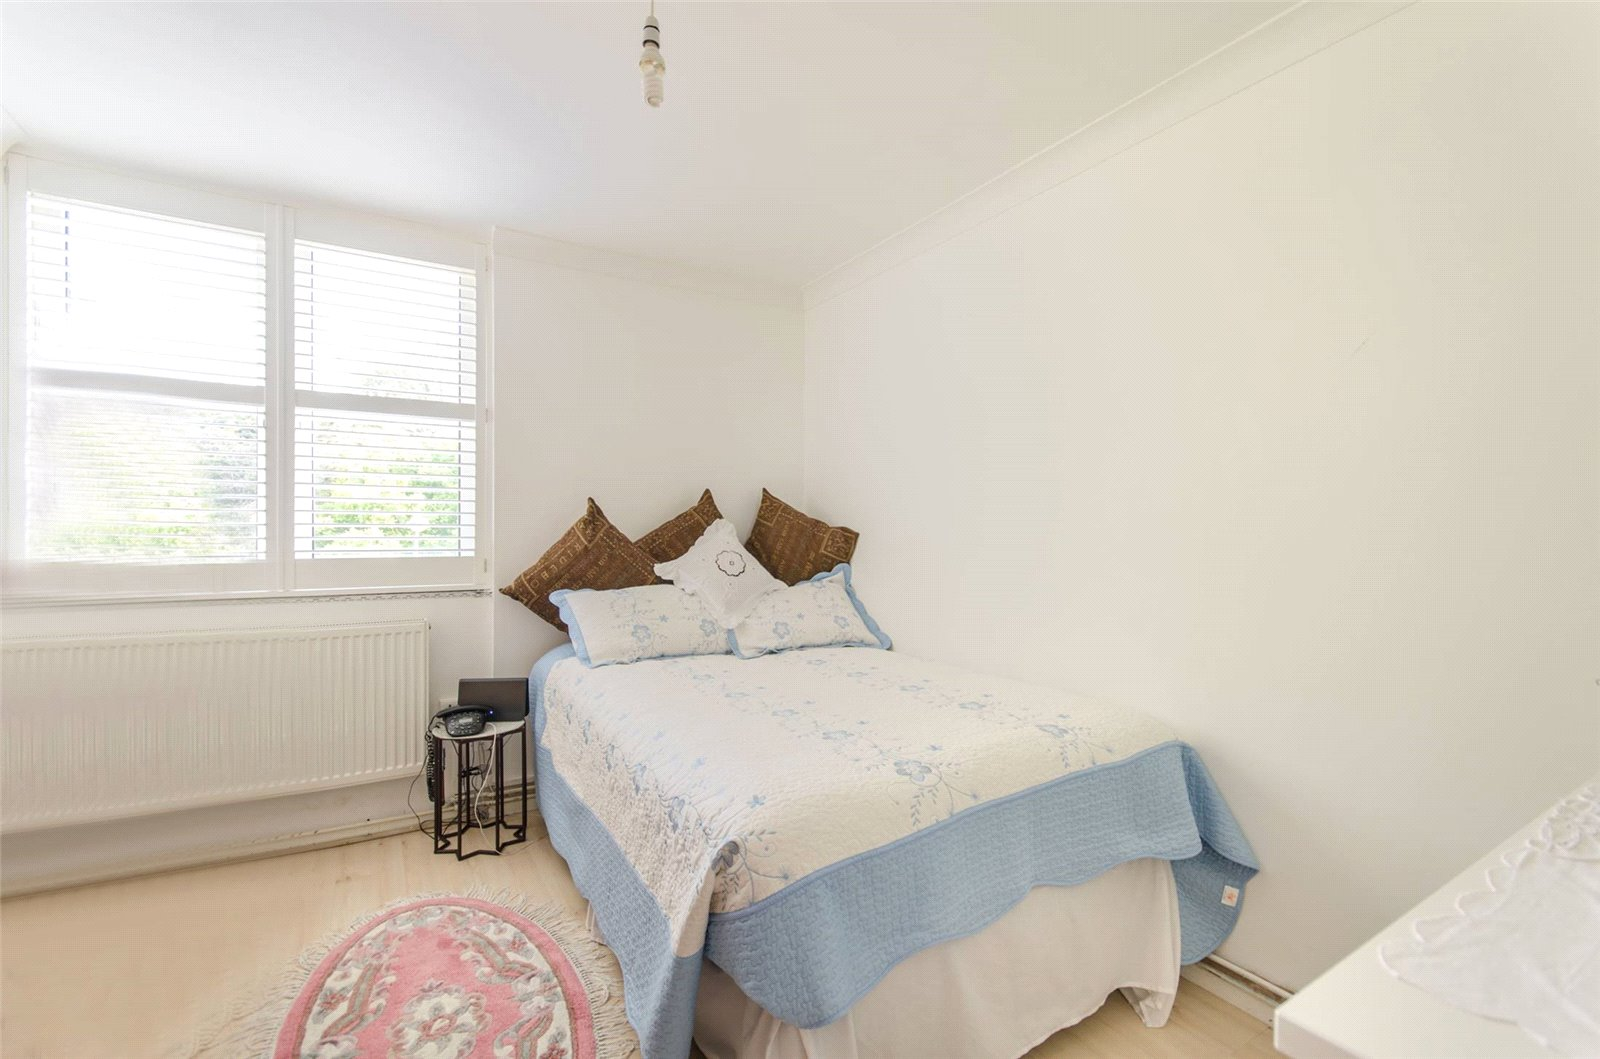 2 bed flat for sale in Wimbledon 3